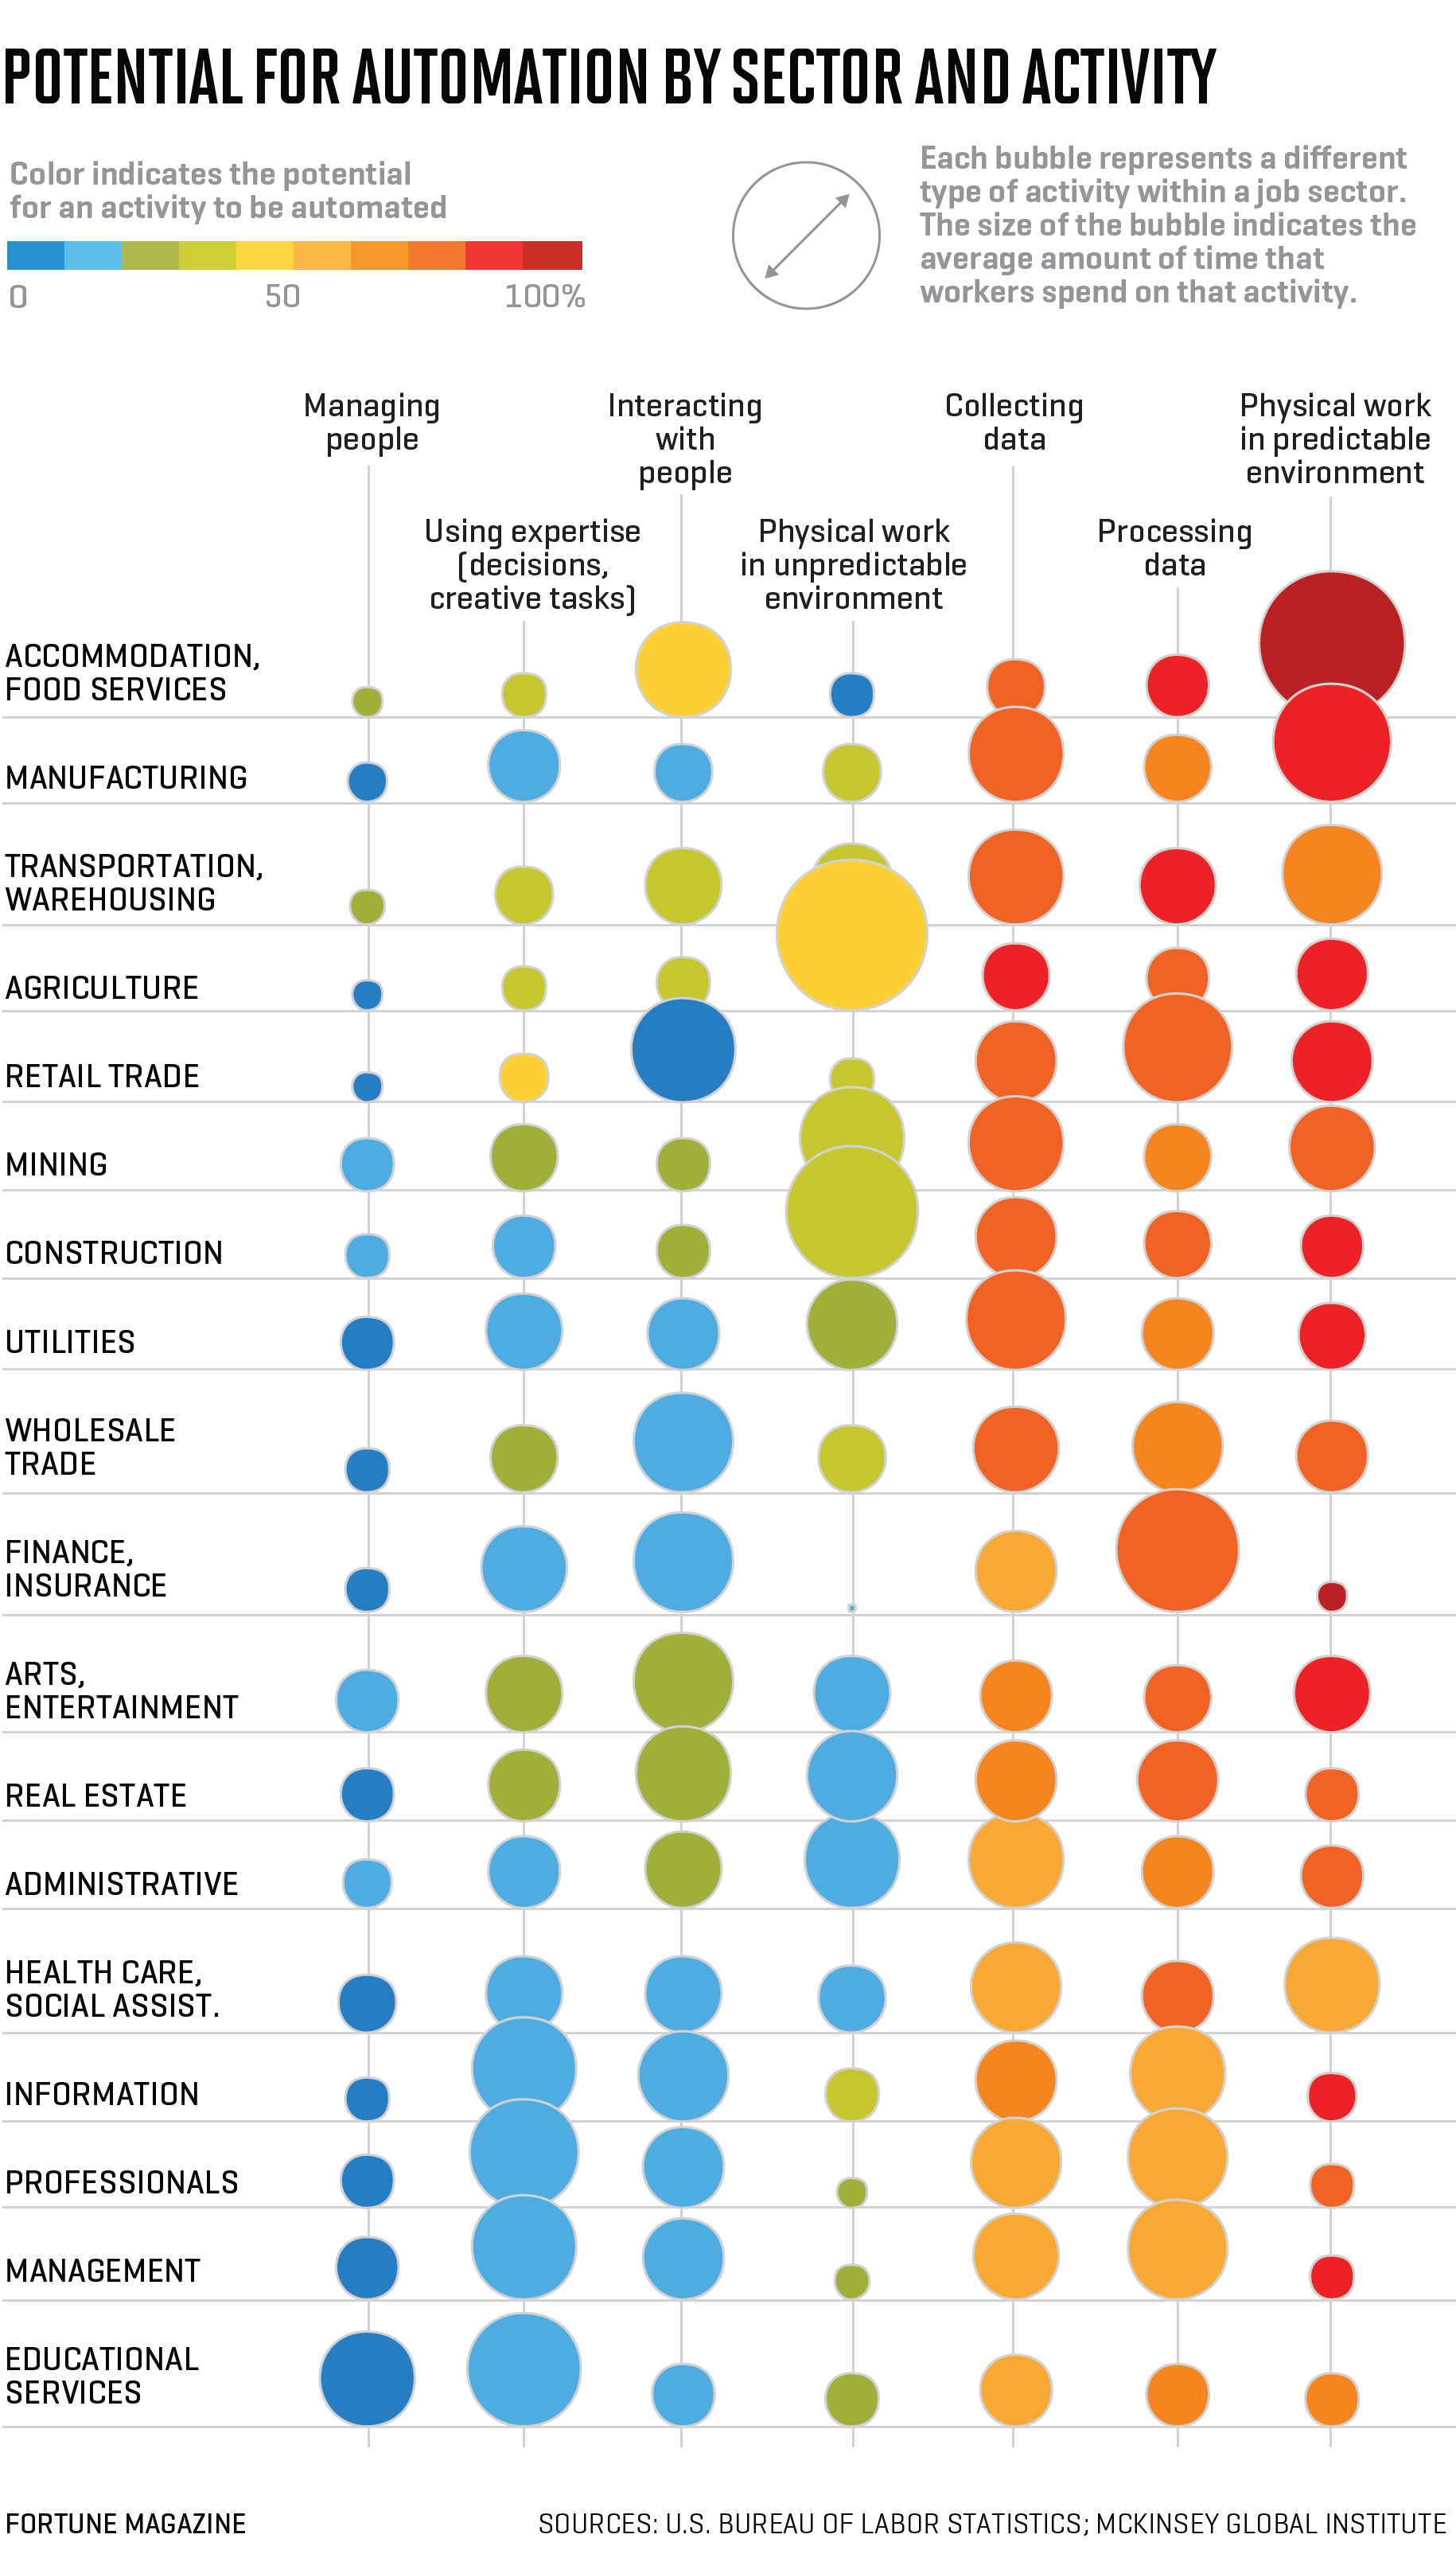 Ready for a Robot Co-Worker? Find Out How Likely Your Job Is